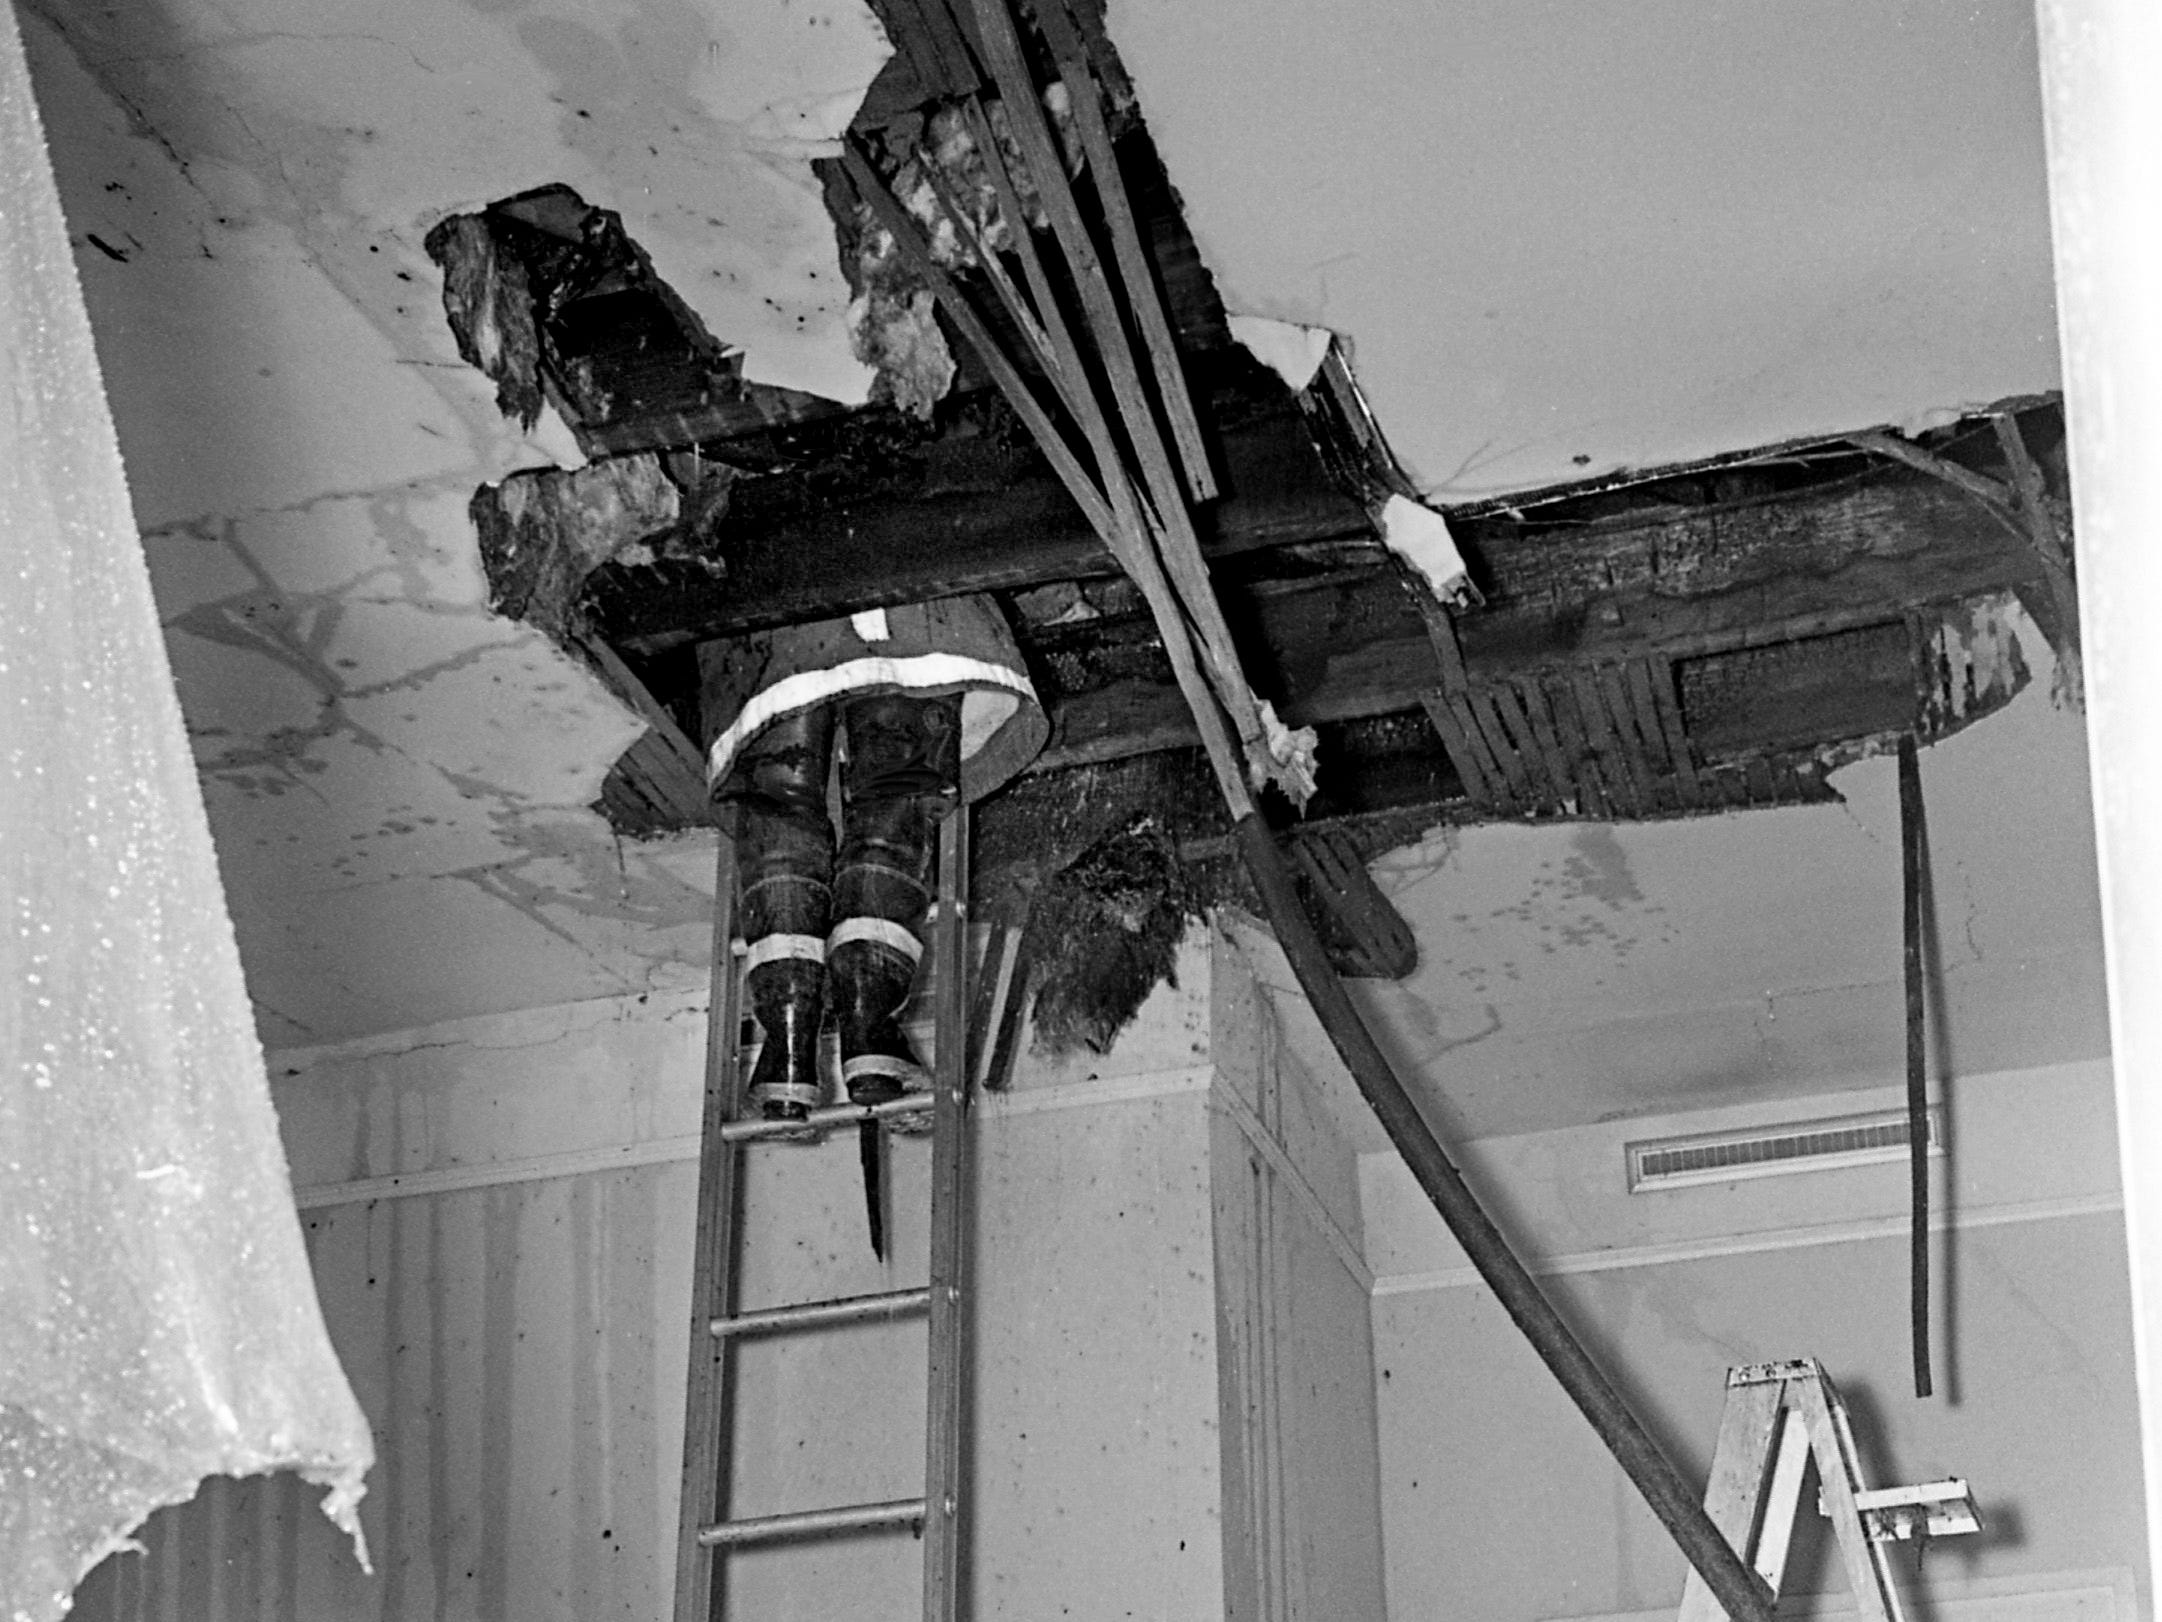 A firefighter climbs through a gaping hole in the ceiling of a room at Travellers' Rest as another wades through water-soaked debris on the floor to battle a fire in the attic Jan. 4, 1969.